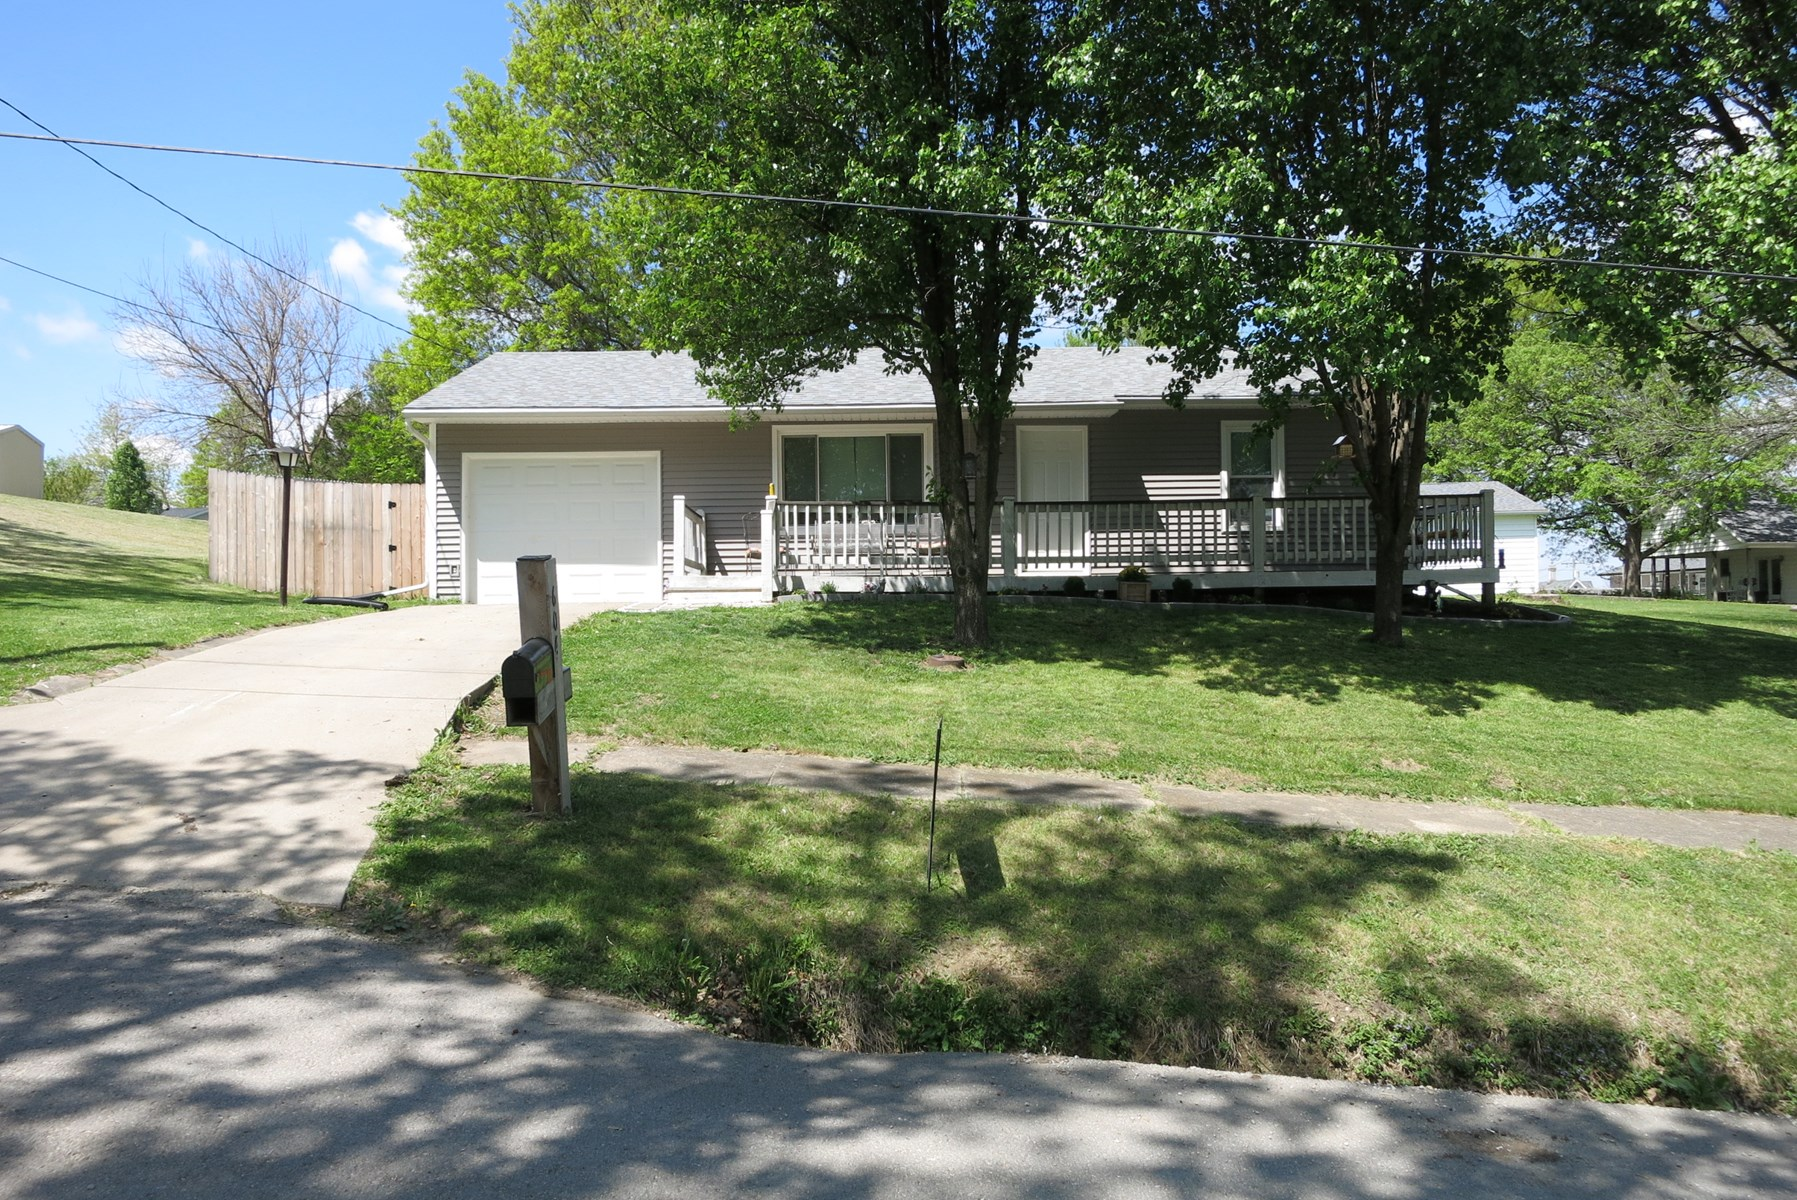 Ranch Style House For Sale in Northwest MO